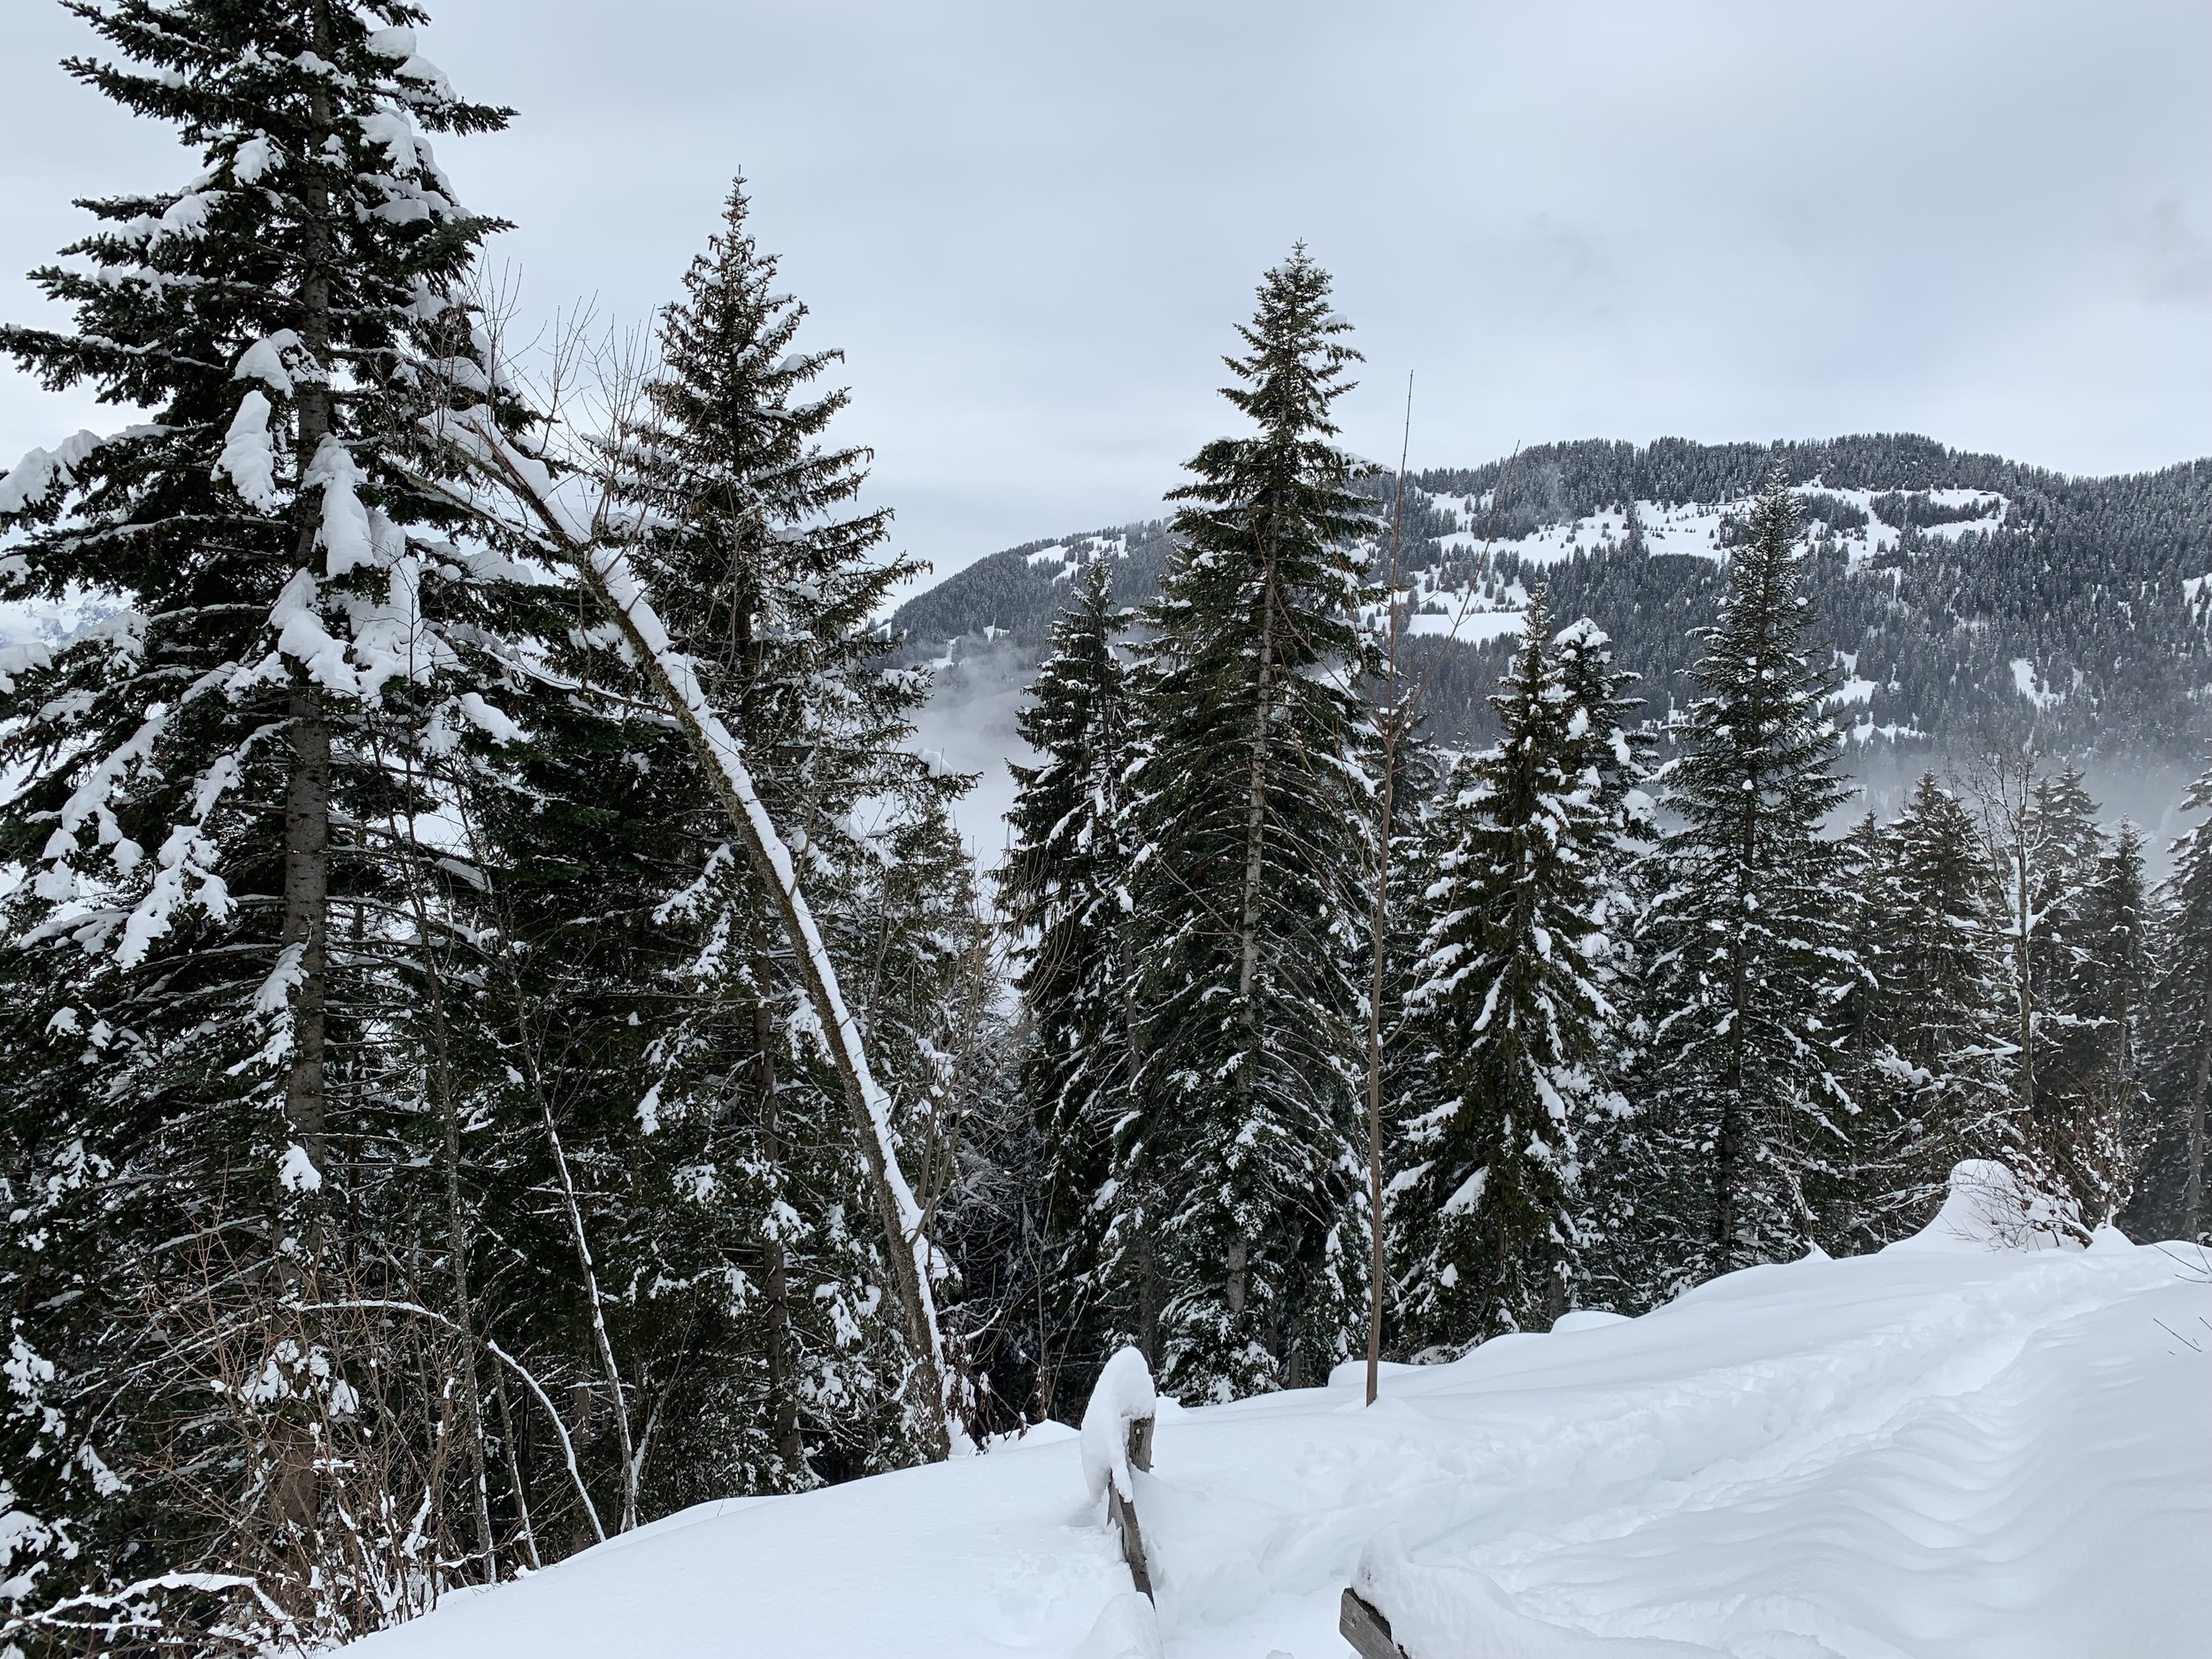 A view from a snowshoeing trail. Villars-sur-Ollon, Switzerland, February 2019.